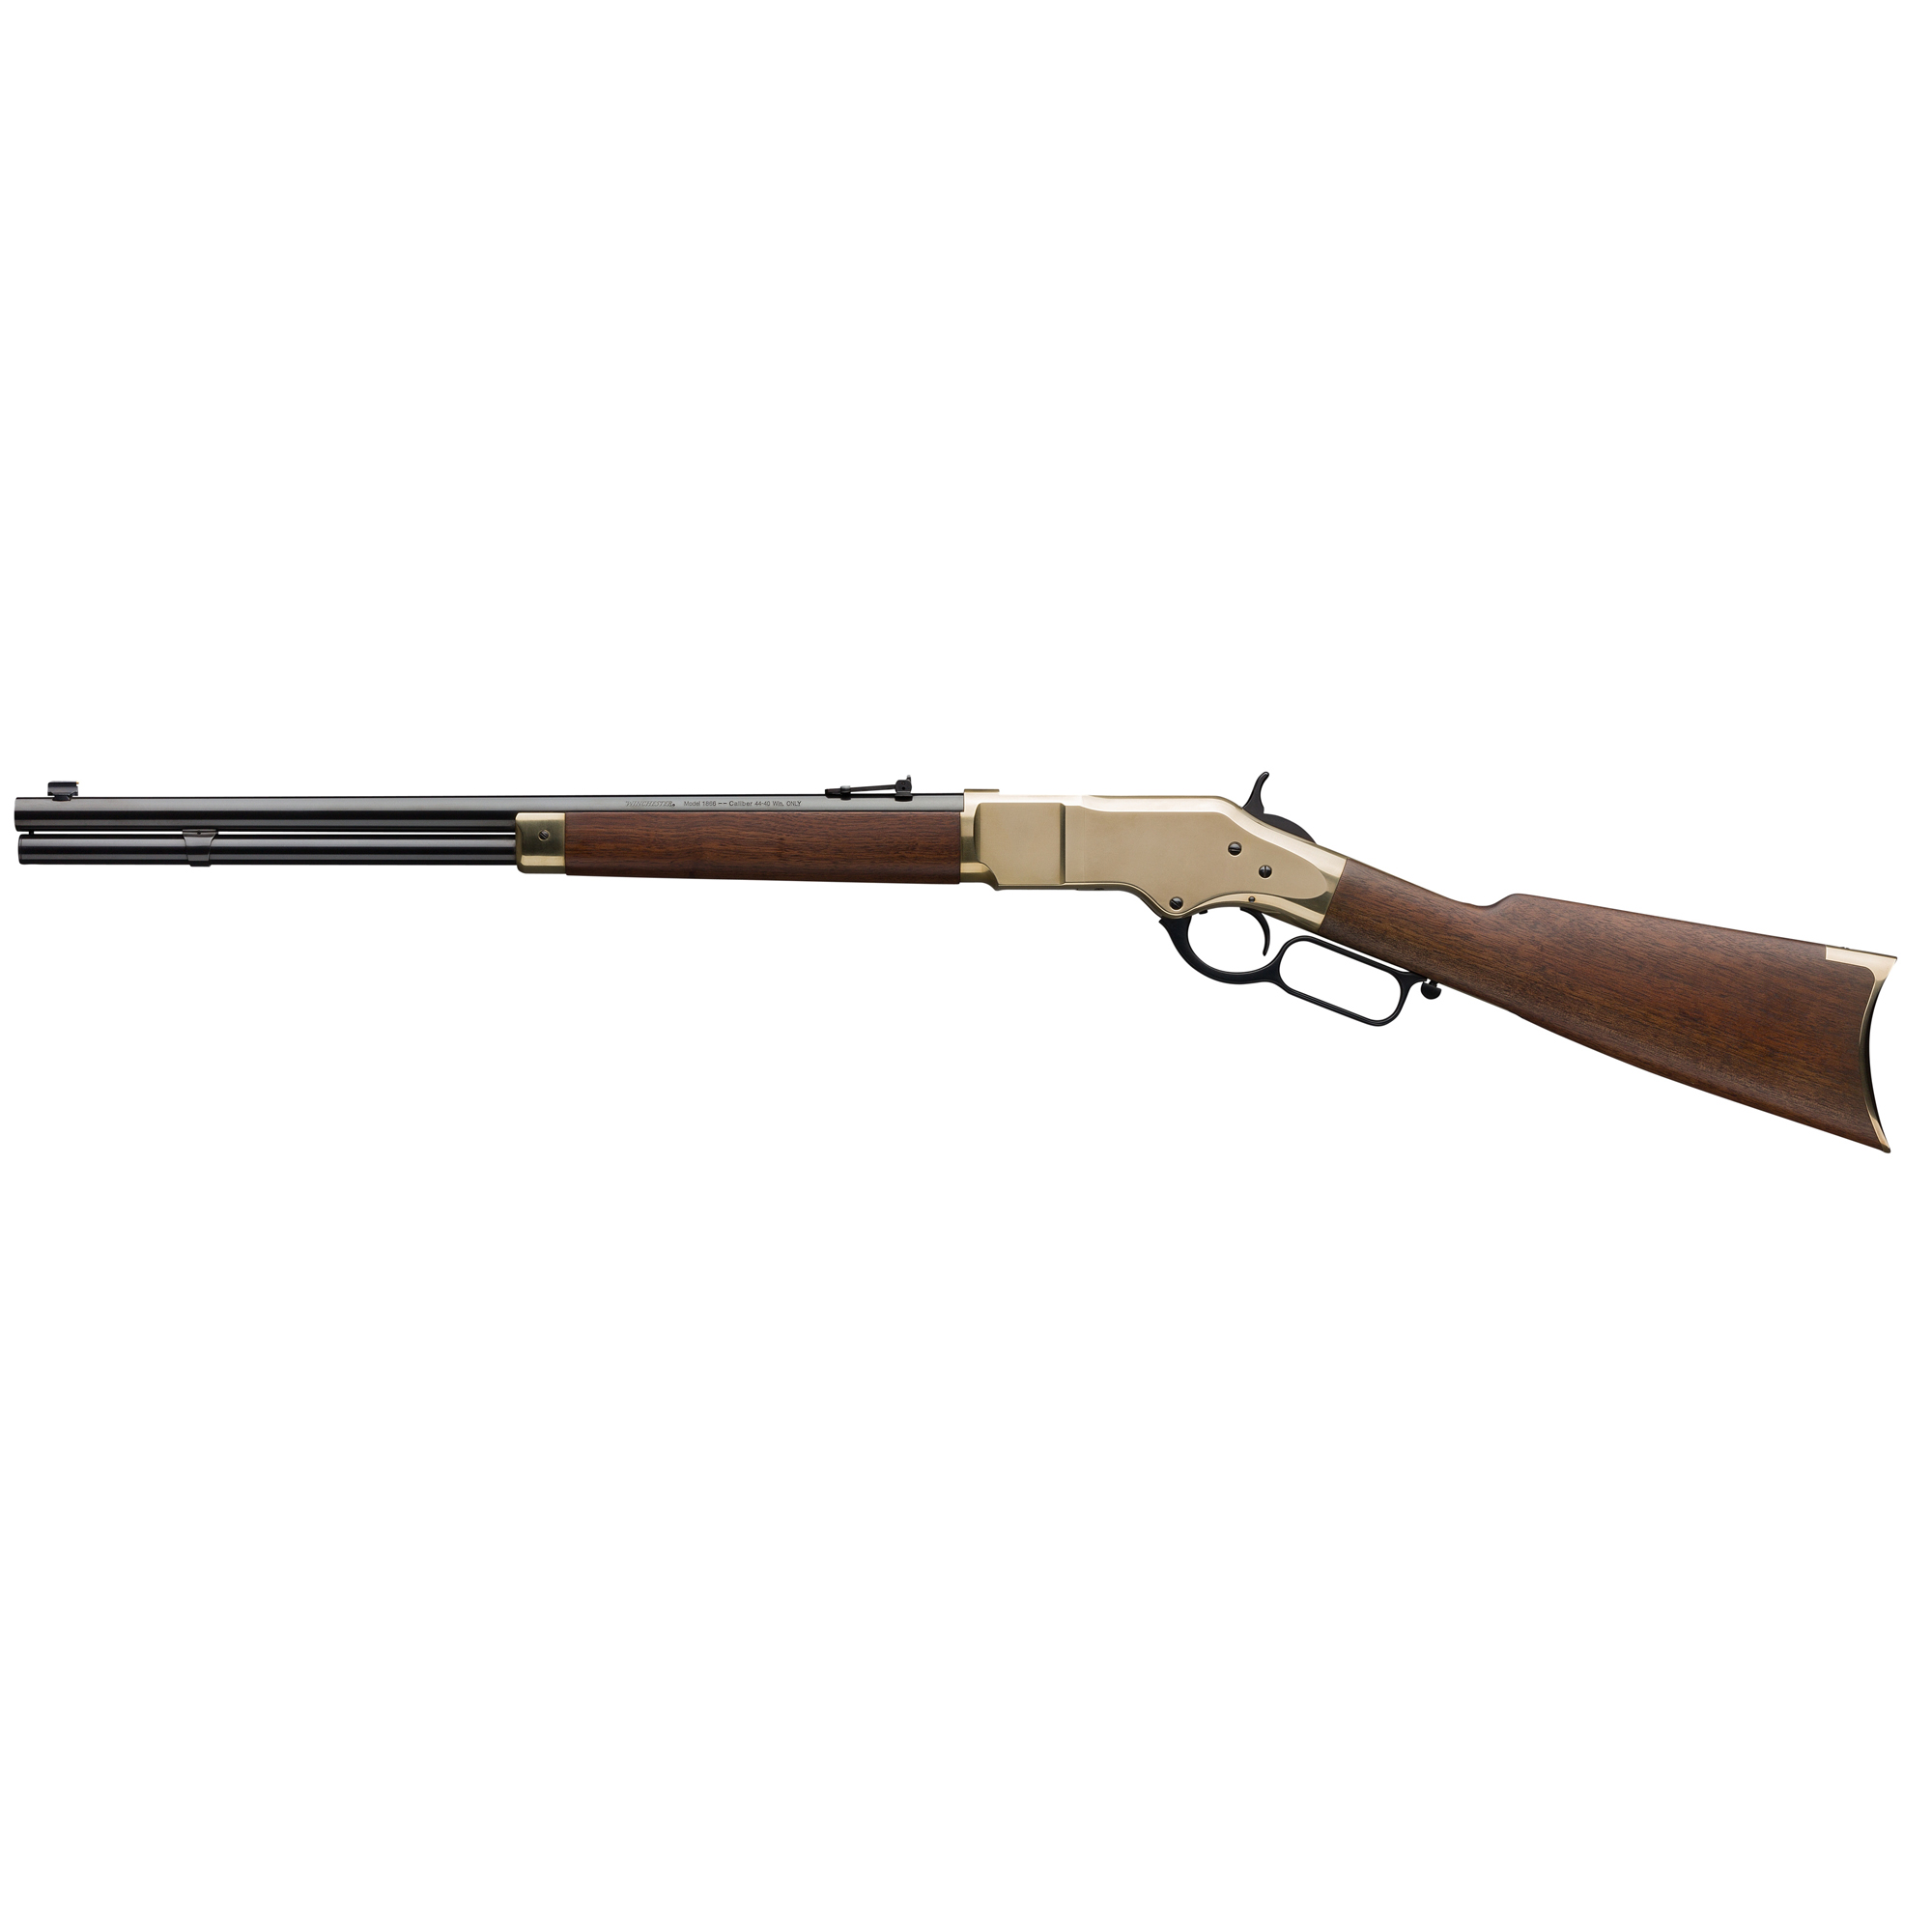 """The Model 1866 lever-action was the very first rifle to wear the Winchester(R) brand. Its bright brass receiver was the basis for the nickname of """"Yellow Boy."""" This legendary rifle is now available from Winchester(R) Repeating Arms in a new Grade I Short Rifle. This makes the """"Yellow Boy"""" experience readily attainable for cowboy action competitors"""" hunters"""" casual shooters and everyone who enjoys spending a day at the range with a genuine Winchester lever-action classic."""